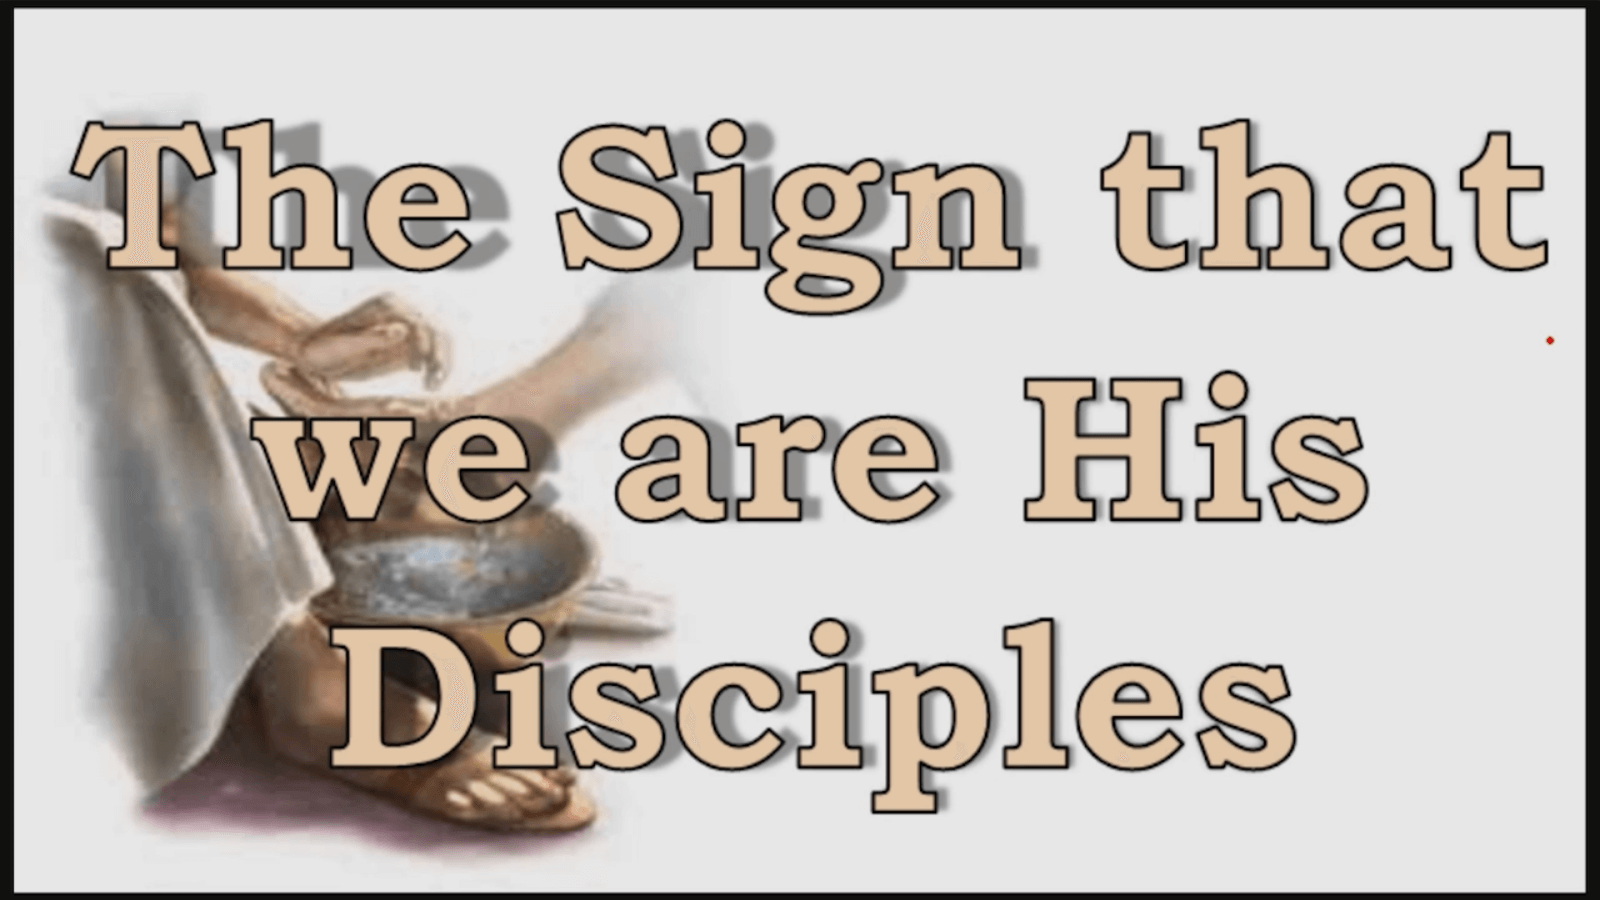 The Sign that we are His Disciples